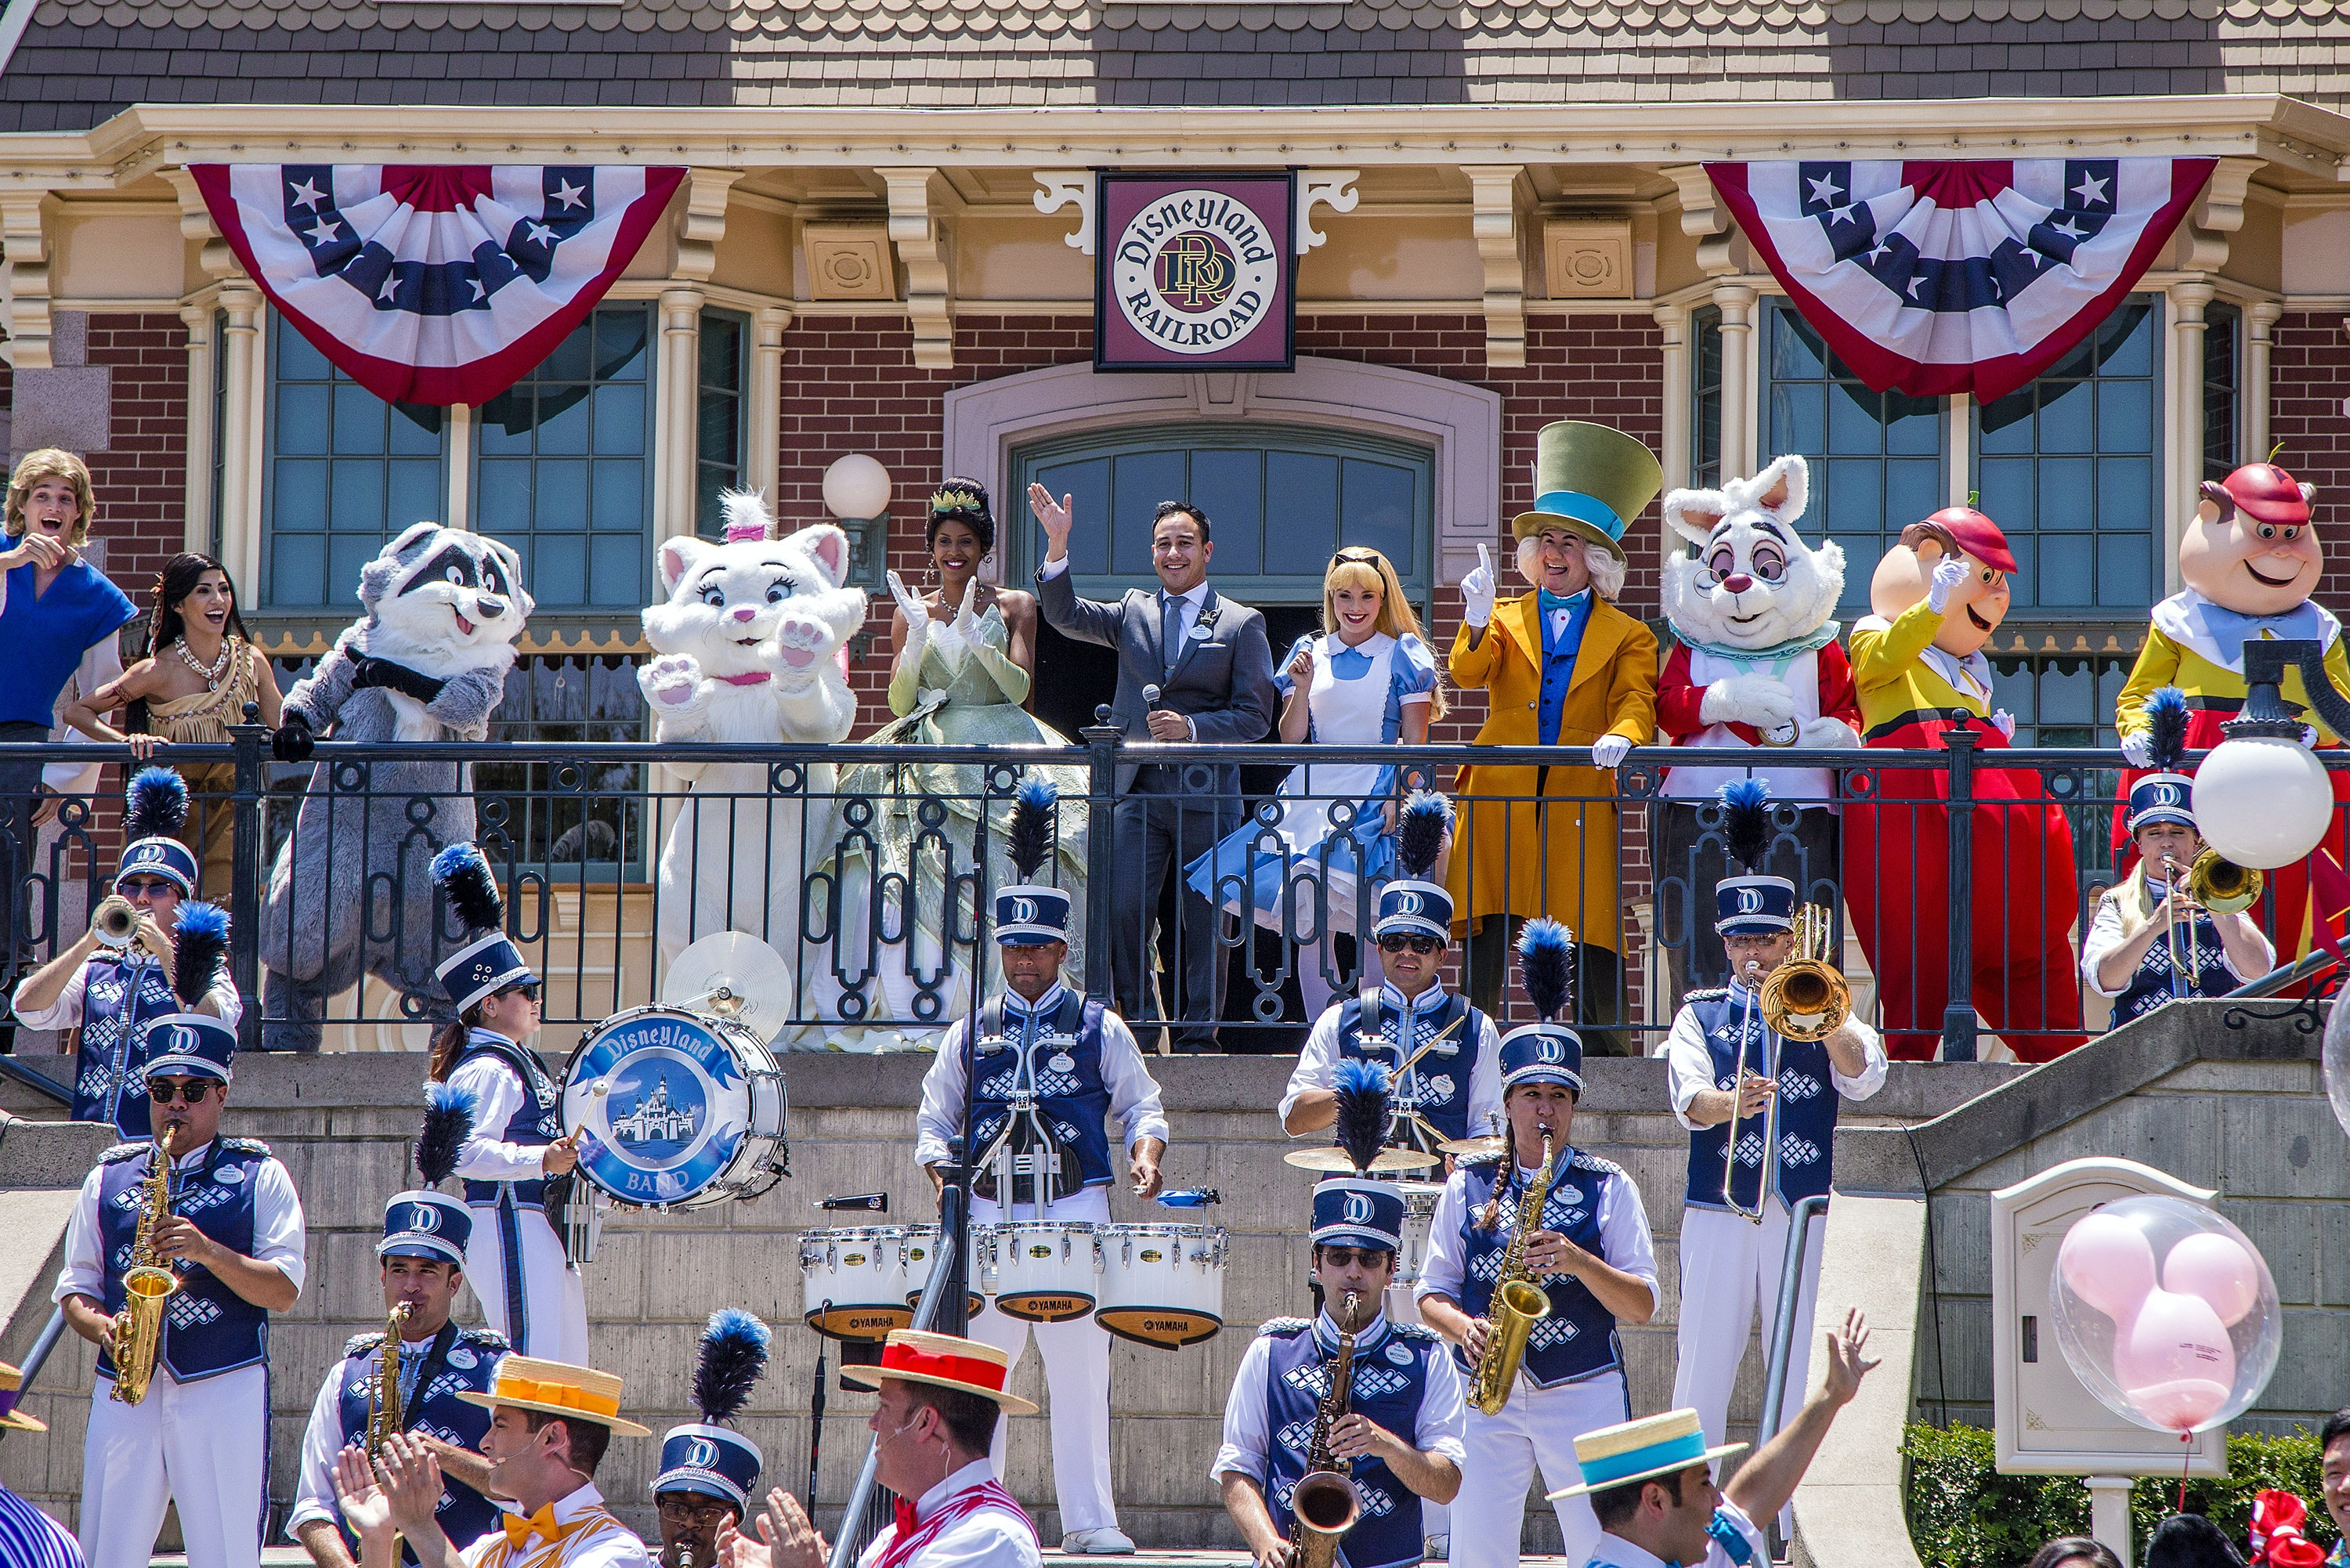 Parades and other celebrations are jubilant (and sometimes overwhelming) events at Disneyland.